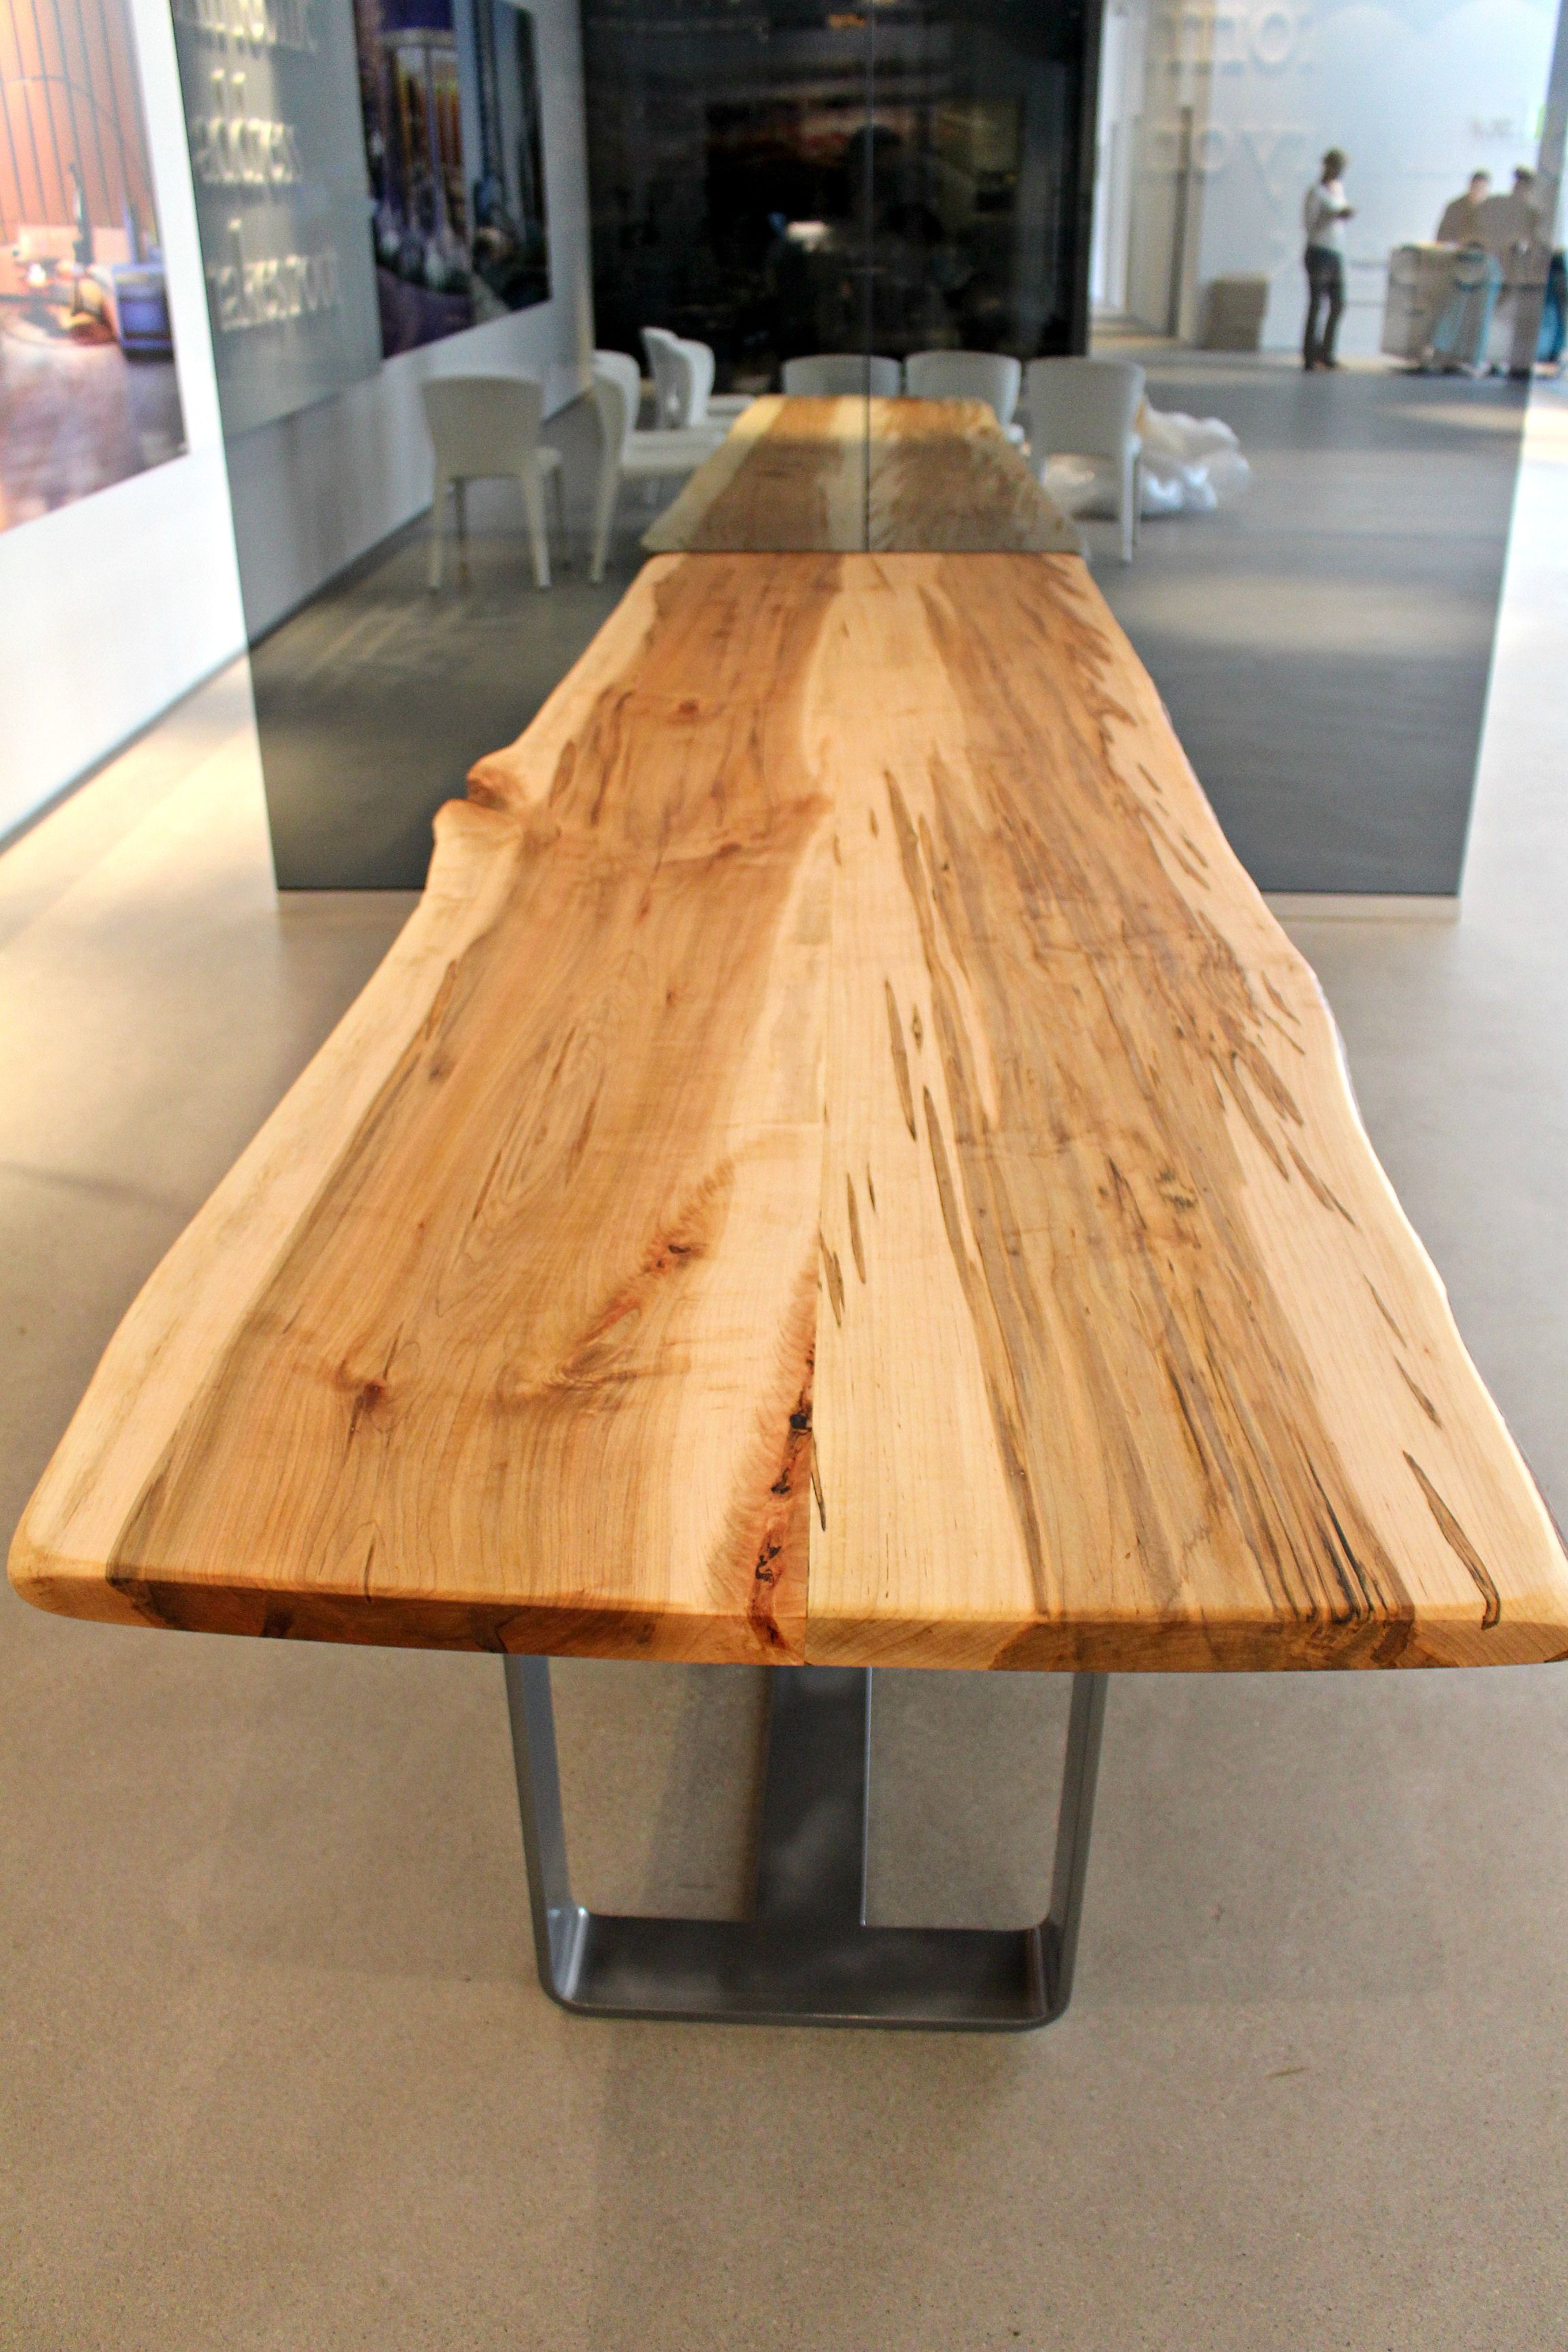 Silver Maple Live Edge Table Munge Leung This Table Is From Living